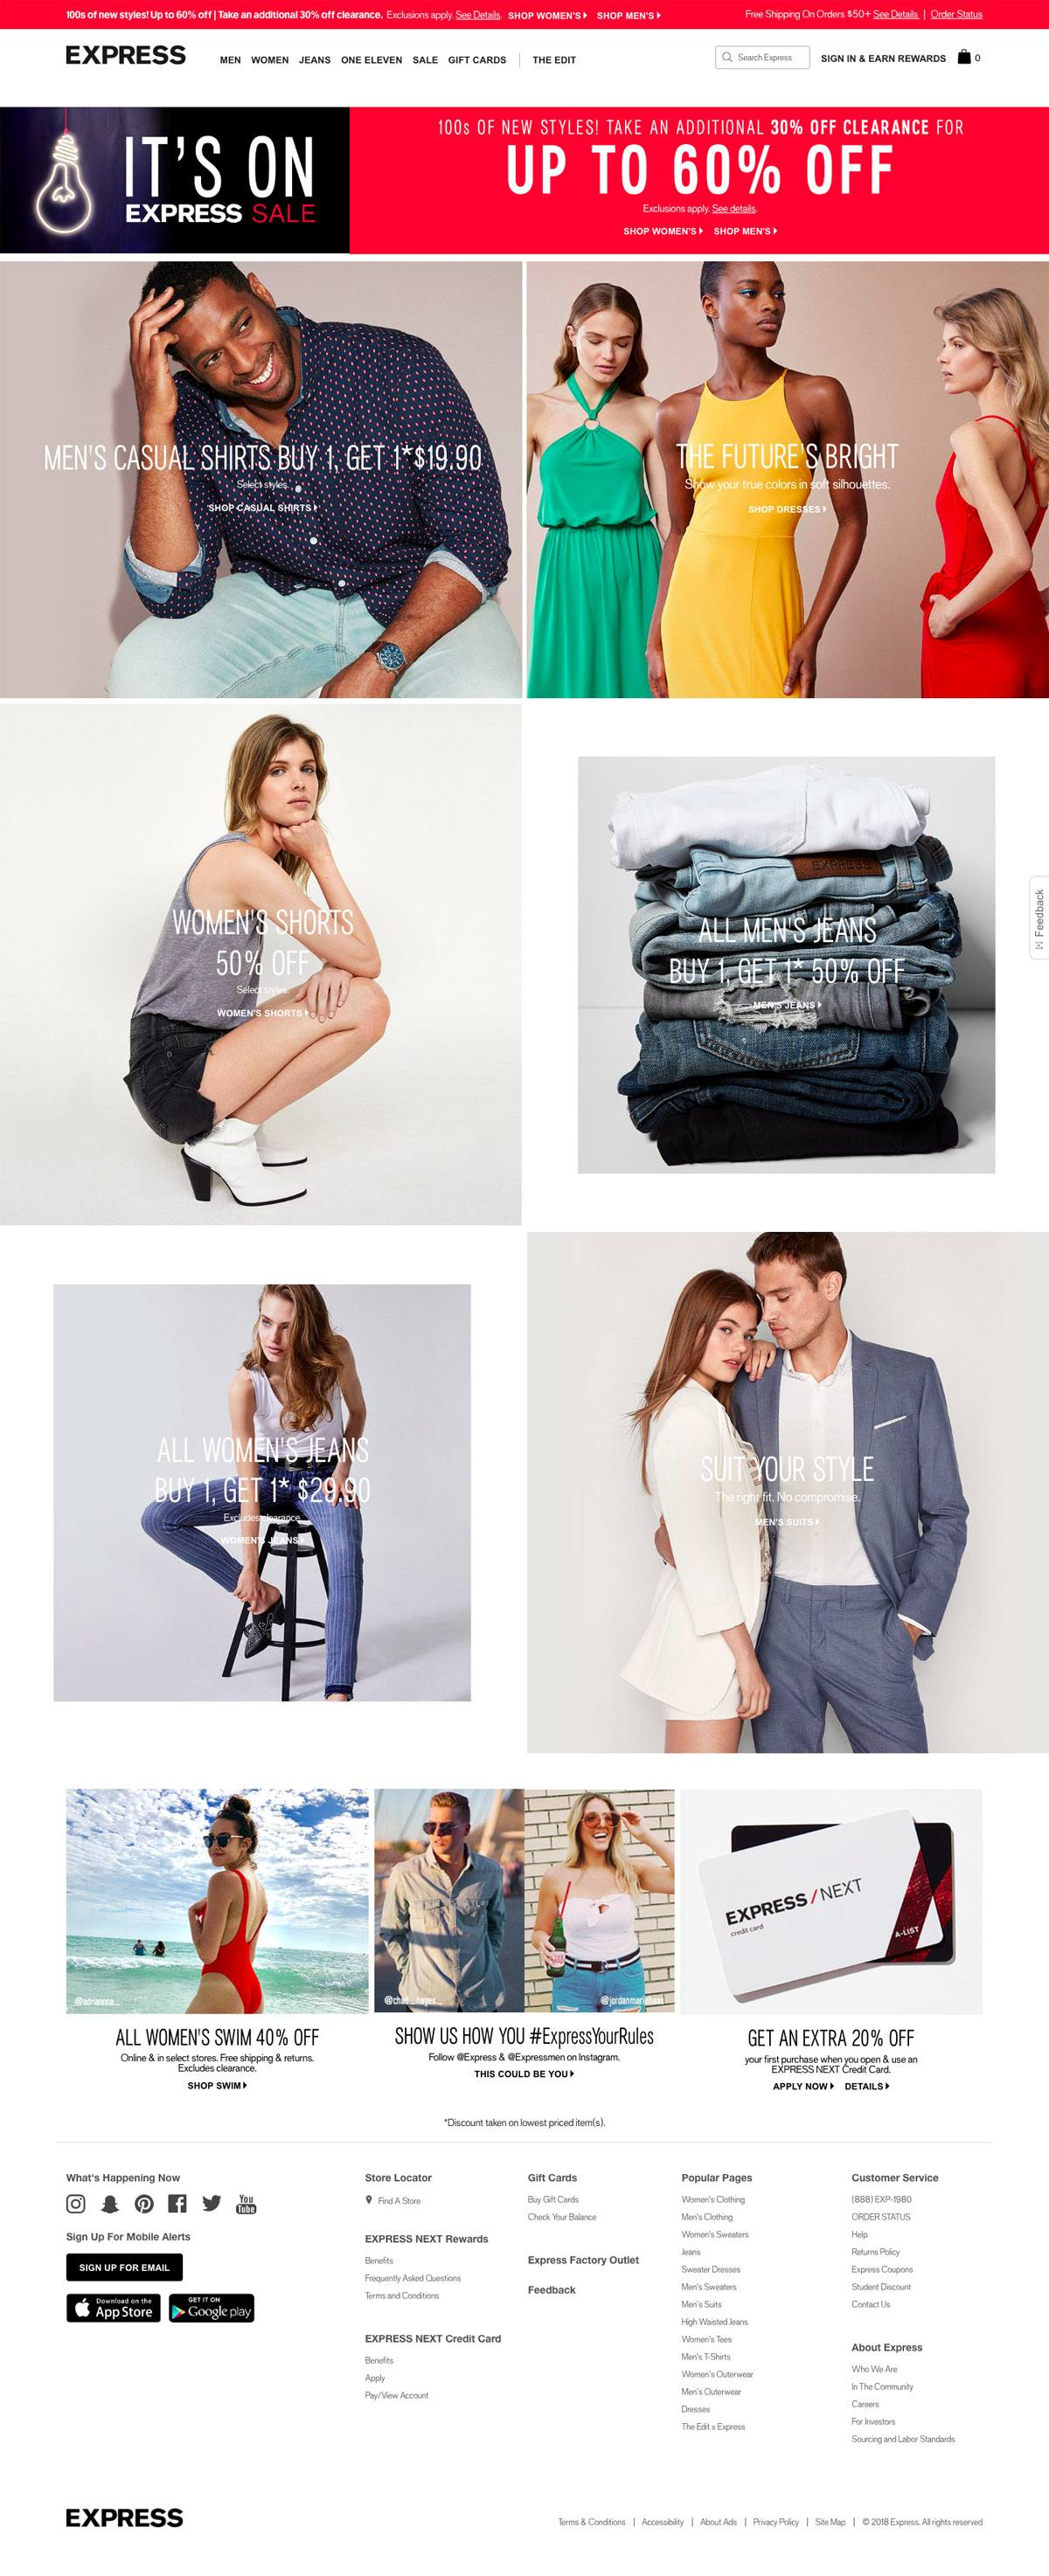 eCommerce website: Express